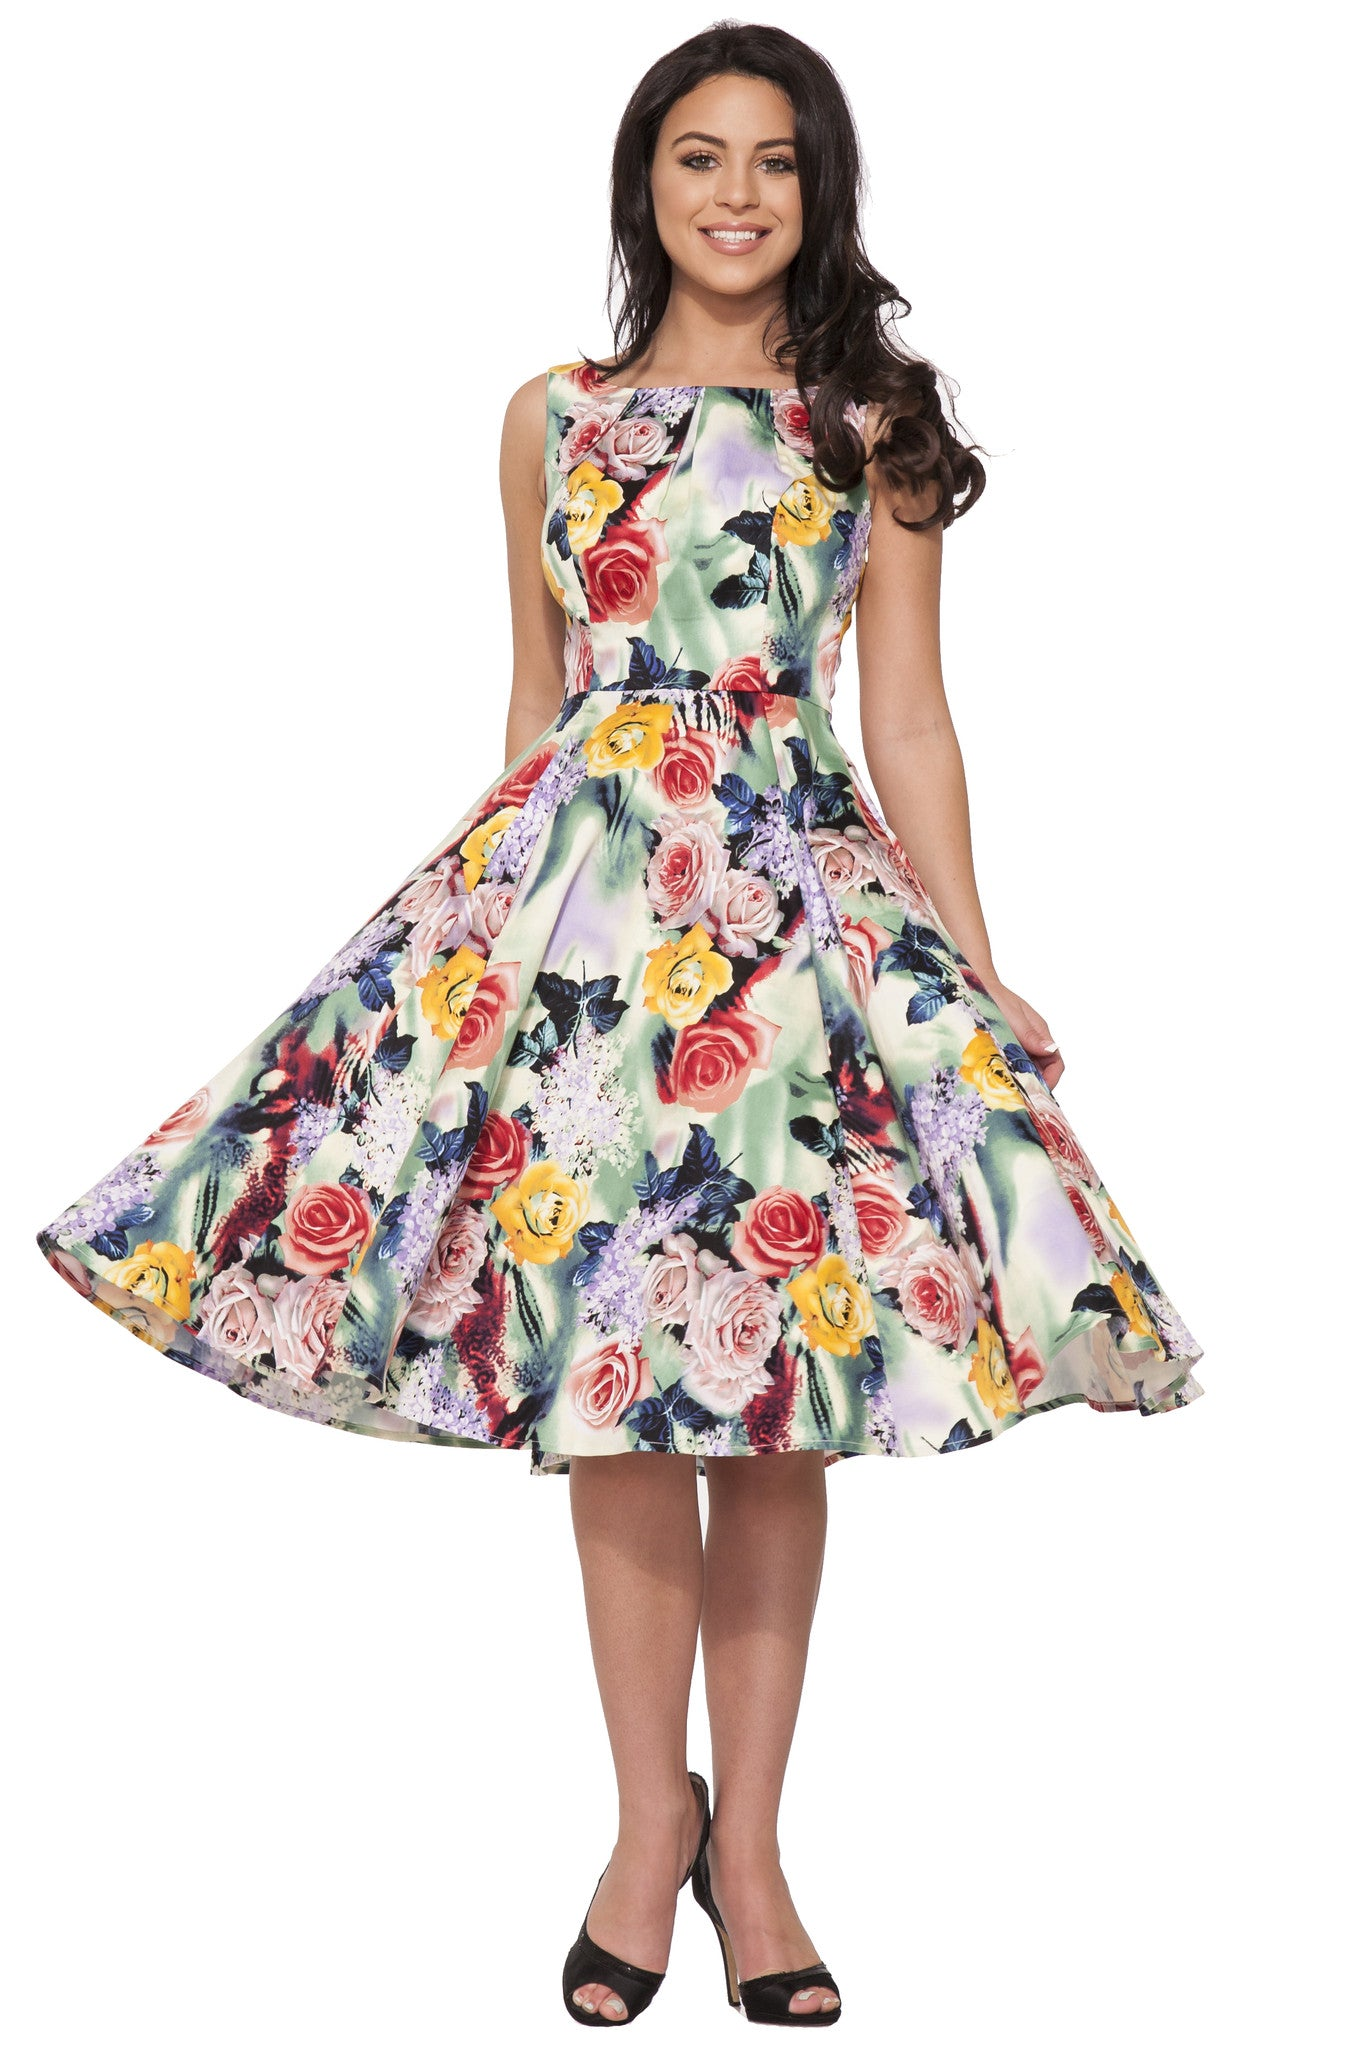 Annabella Floral Swing Dress,Dress,Hearts and Roses London - Discount Divas